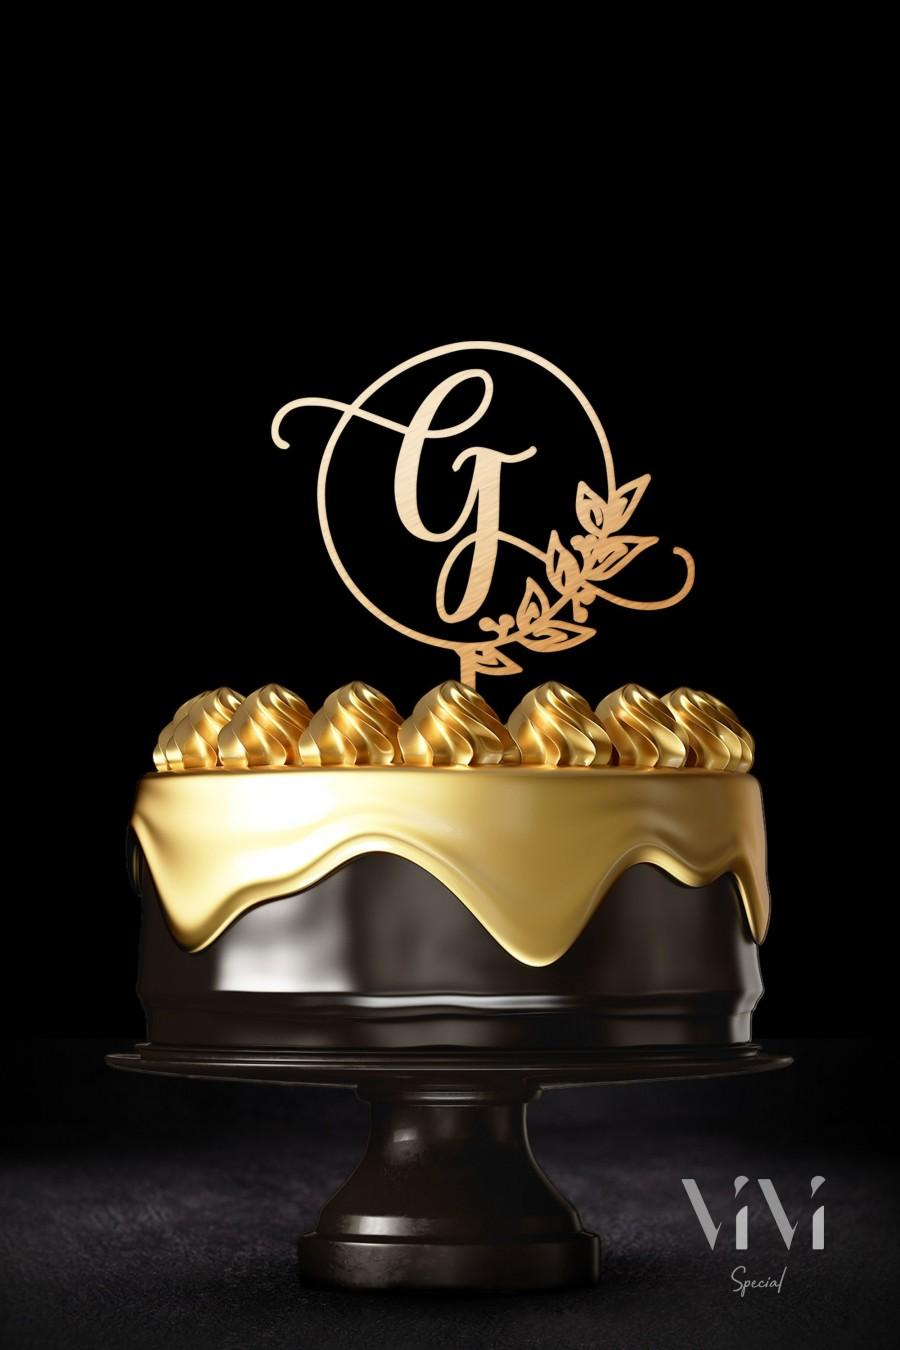 Mariage - Letter G cake topper for wedding